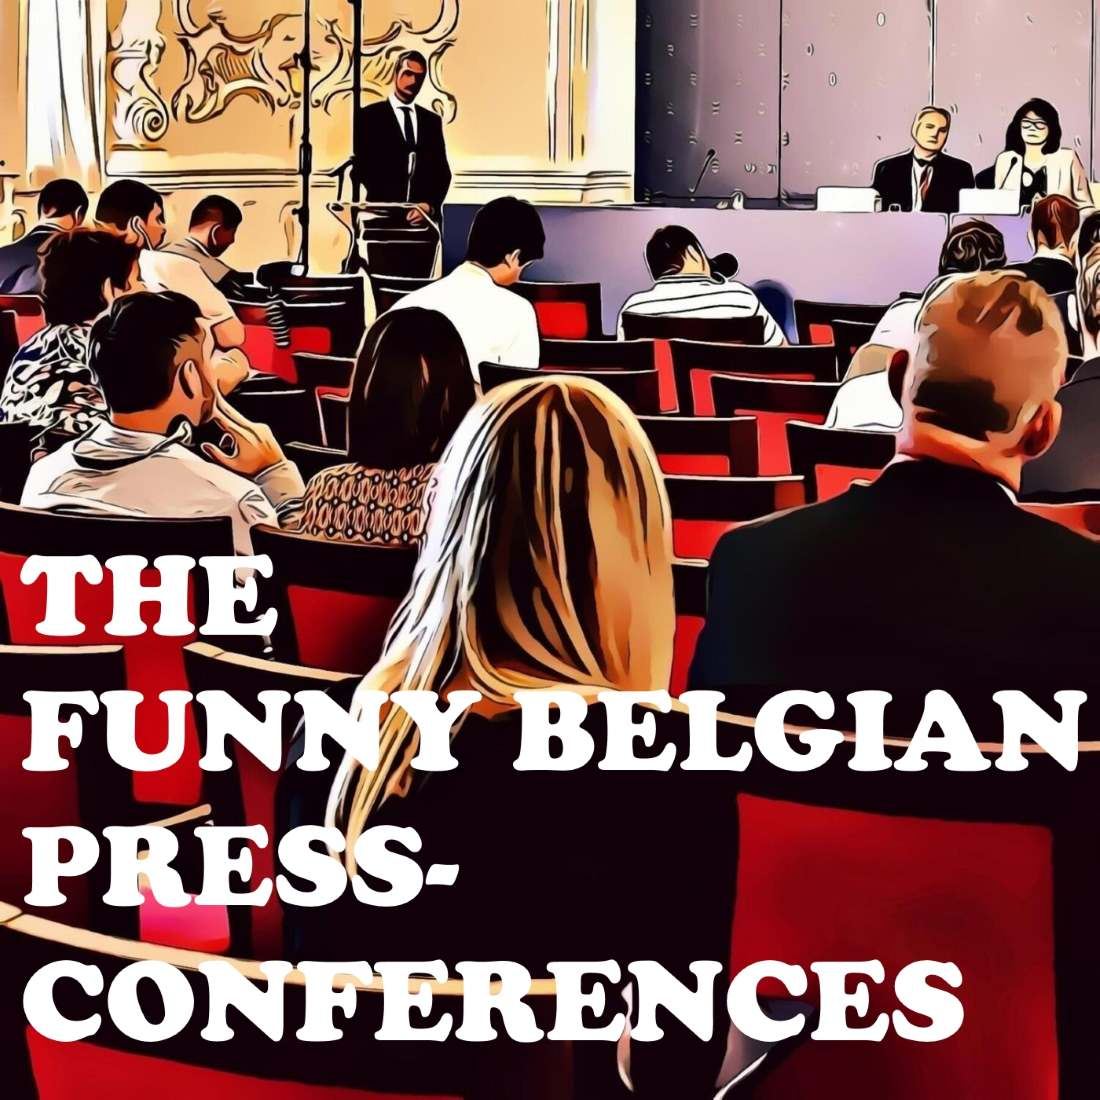 The funny Belgian press conferences Podcast' may be the silliest podcast around